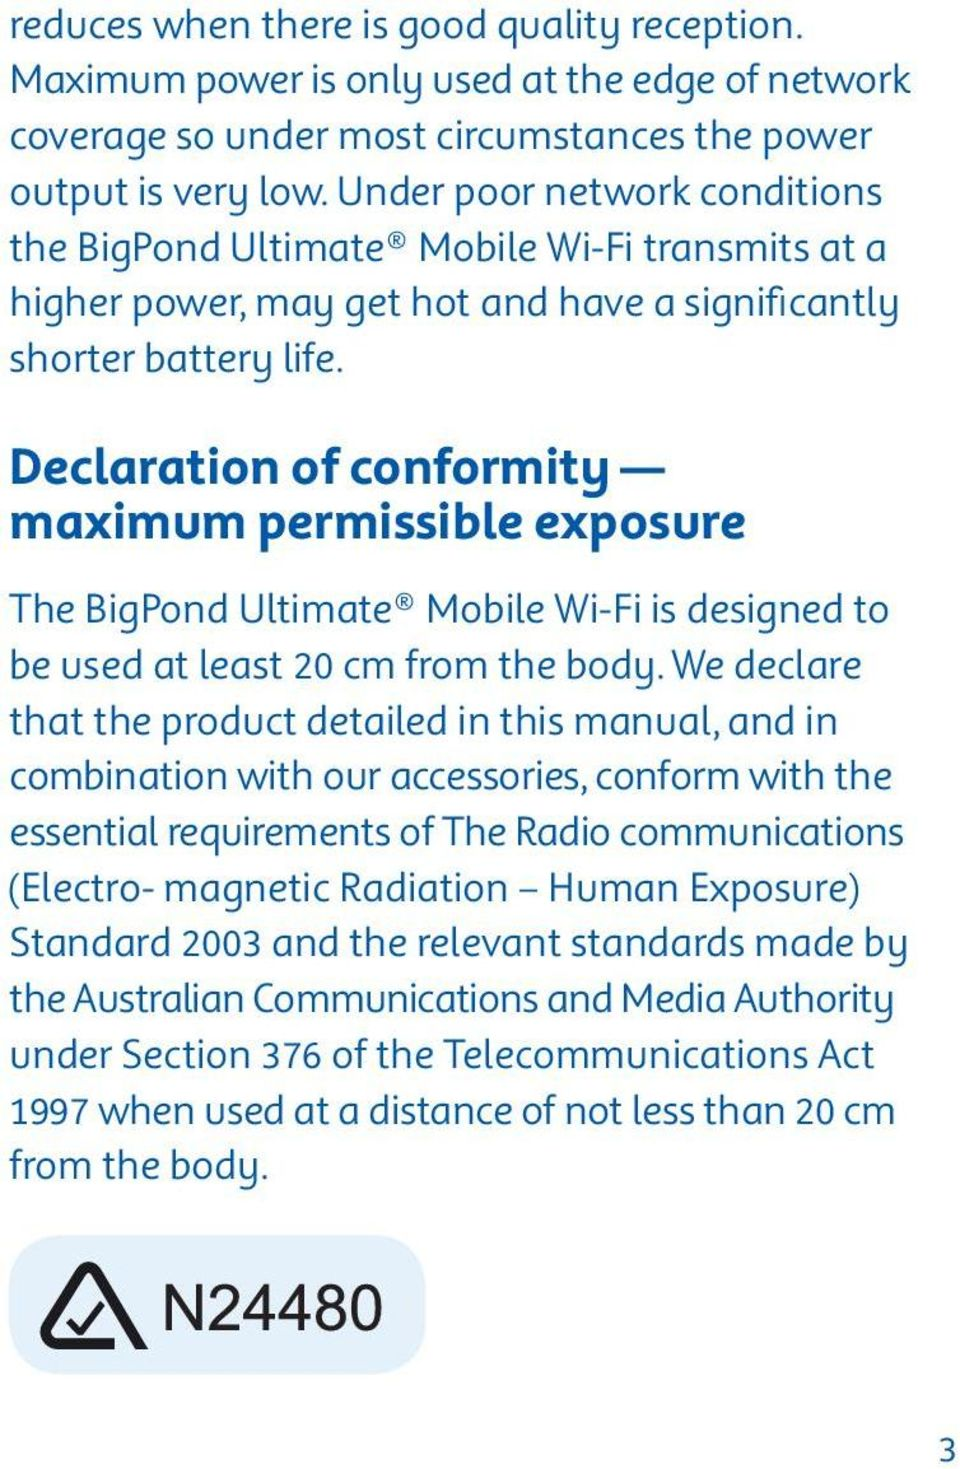 Declaration of conformity maximum permissible exposure The BigPond Ultimate Mobile Wi-Fi is designed to be used at least 20 cm from the body.